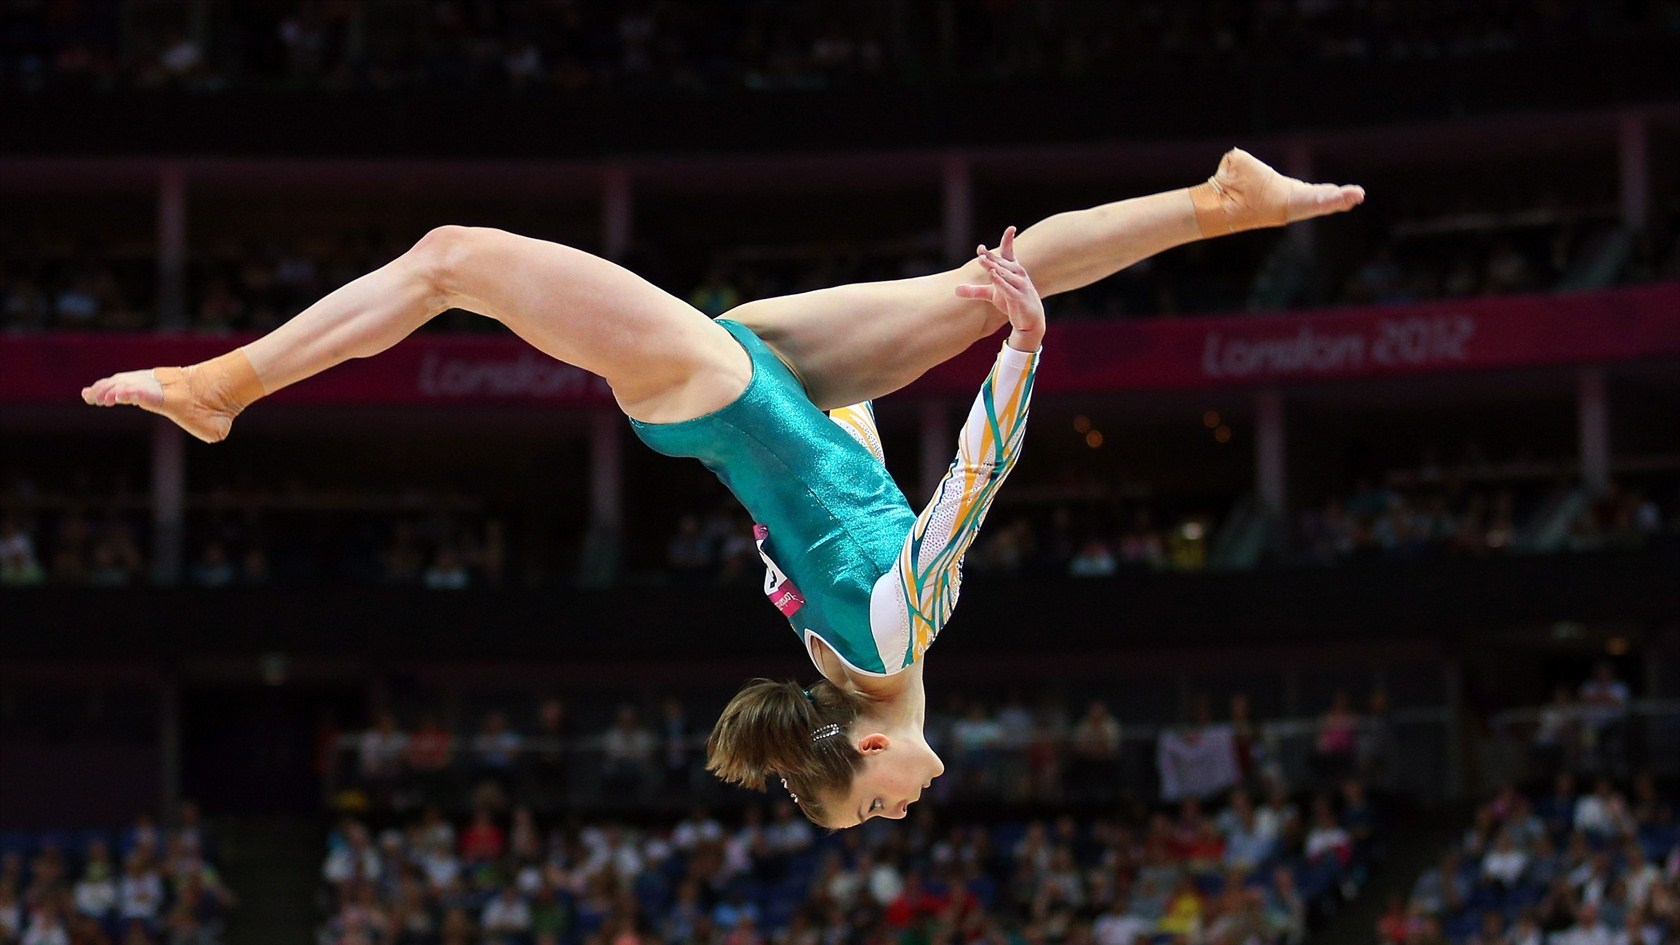 Gymnast pictures pics 7